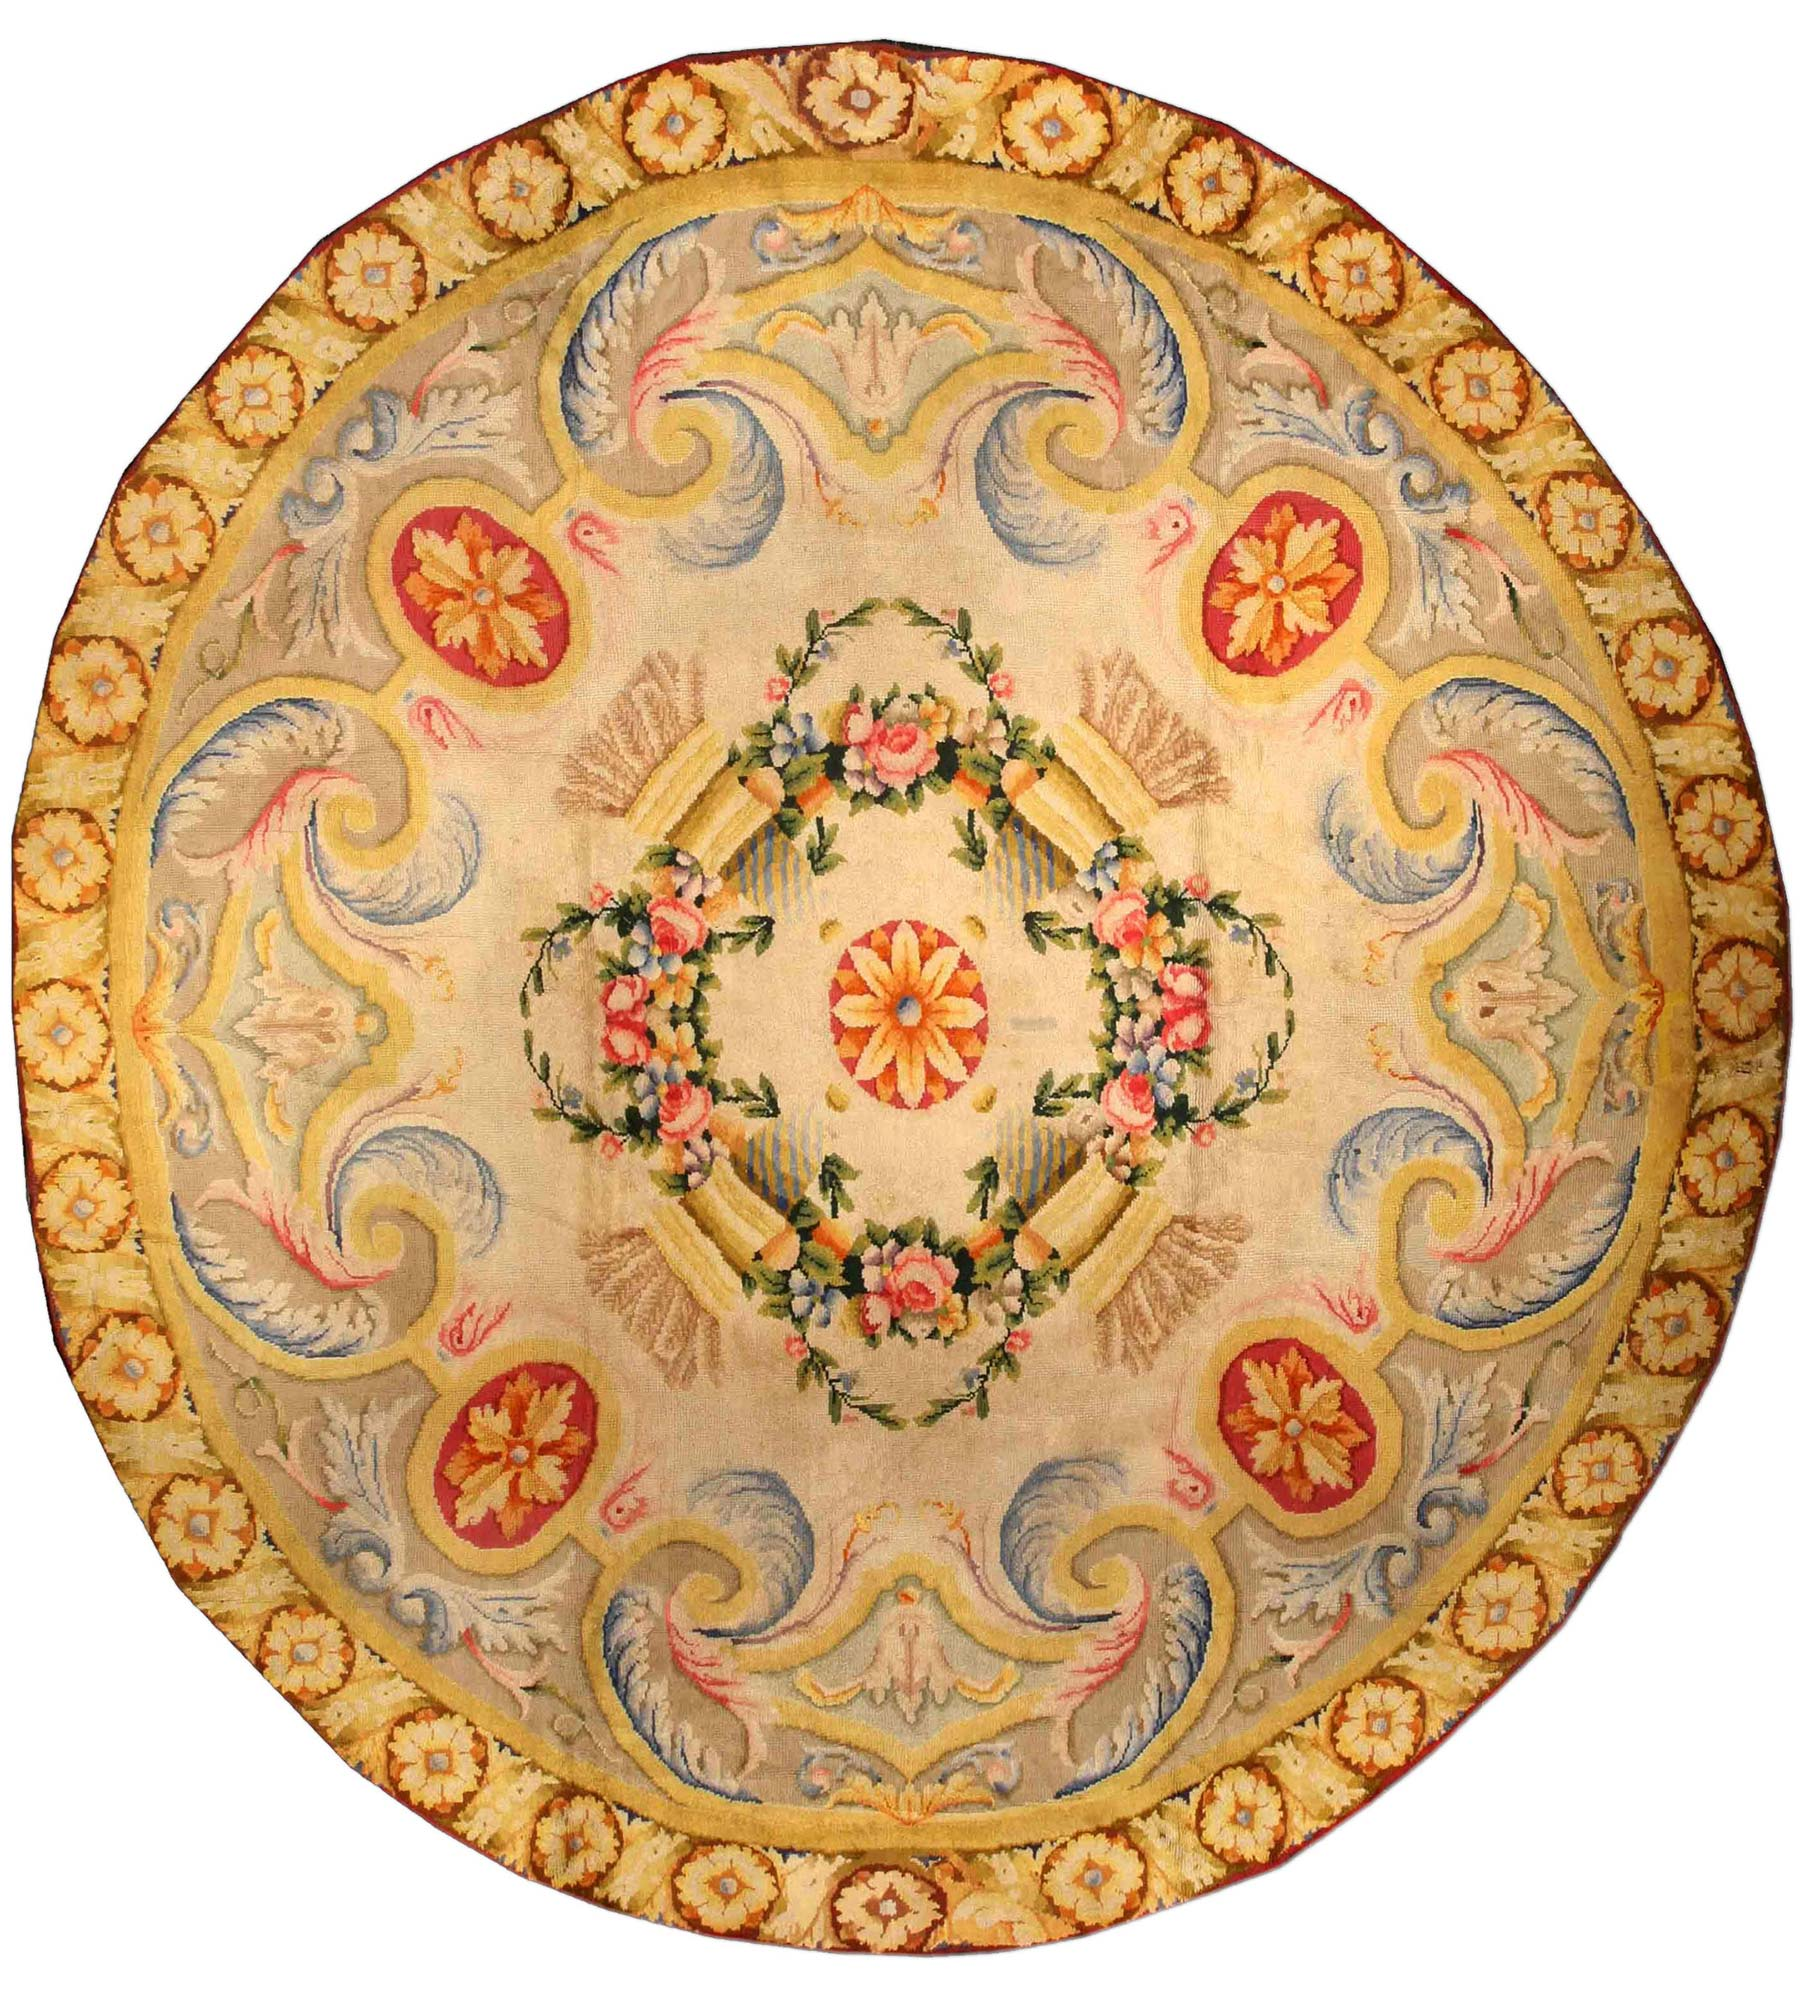 Vintage Spanish Circular Rug Bb1348 By Dlb